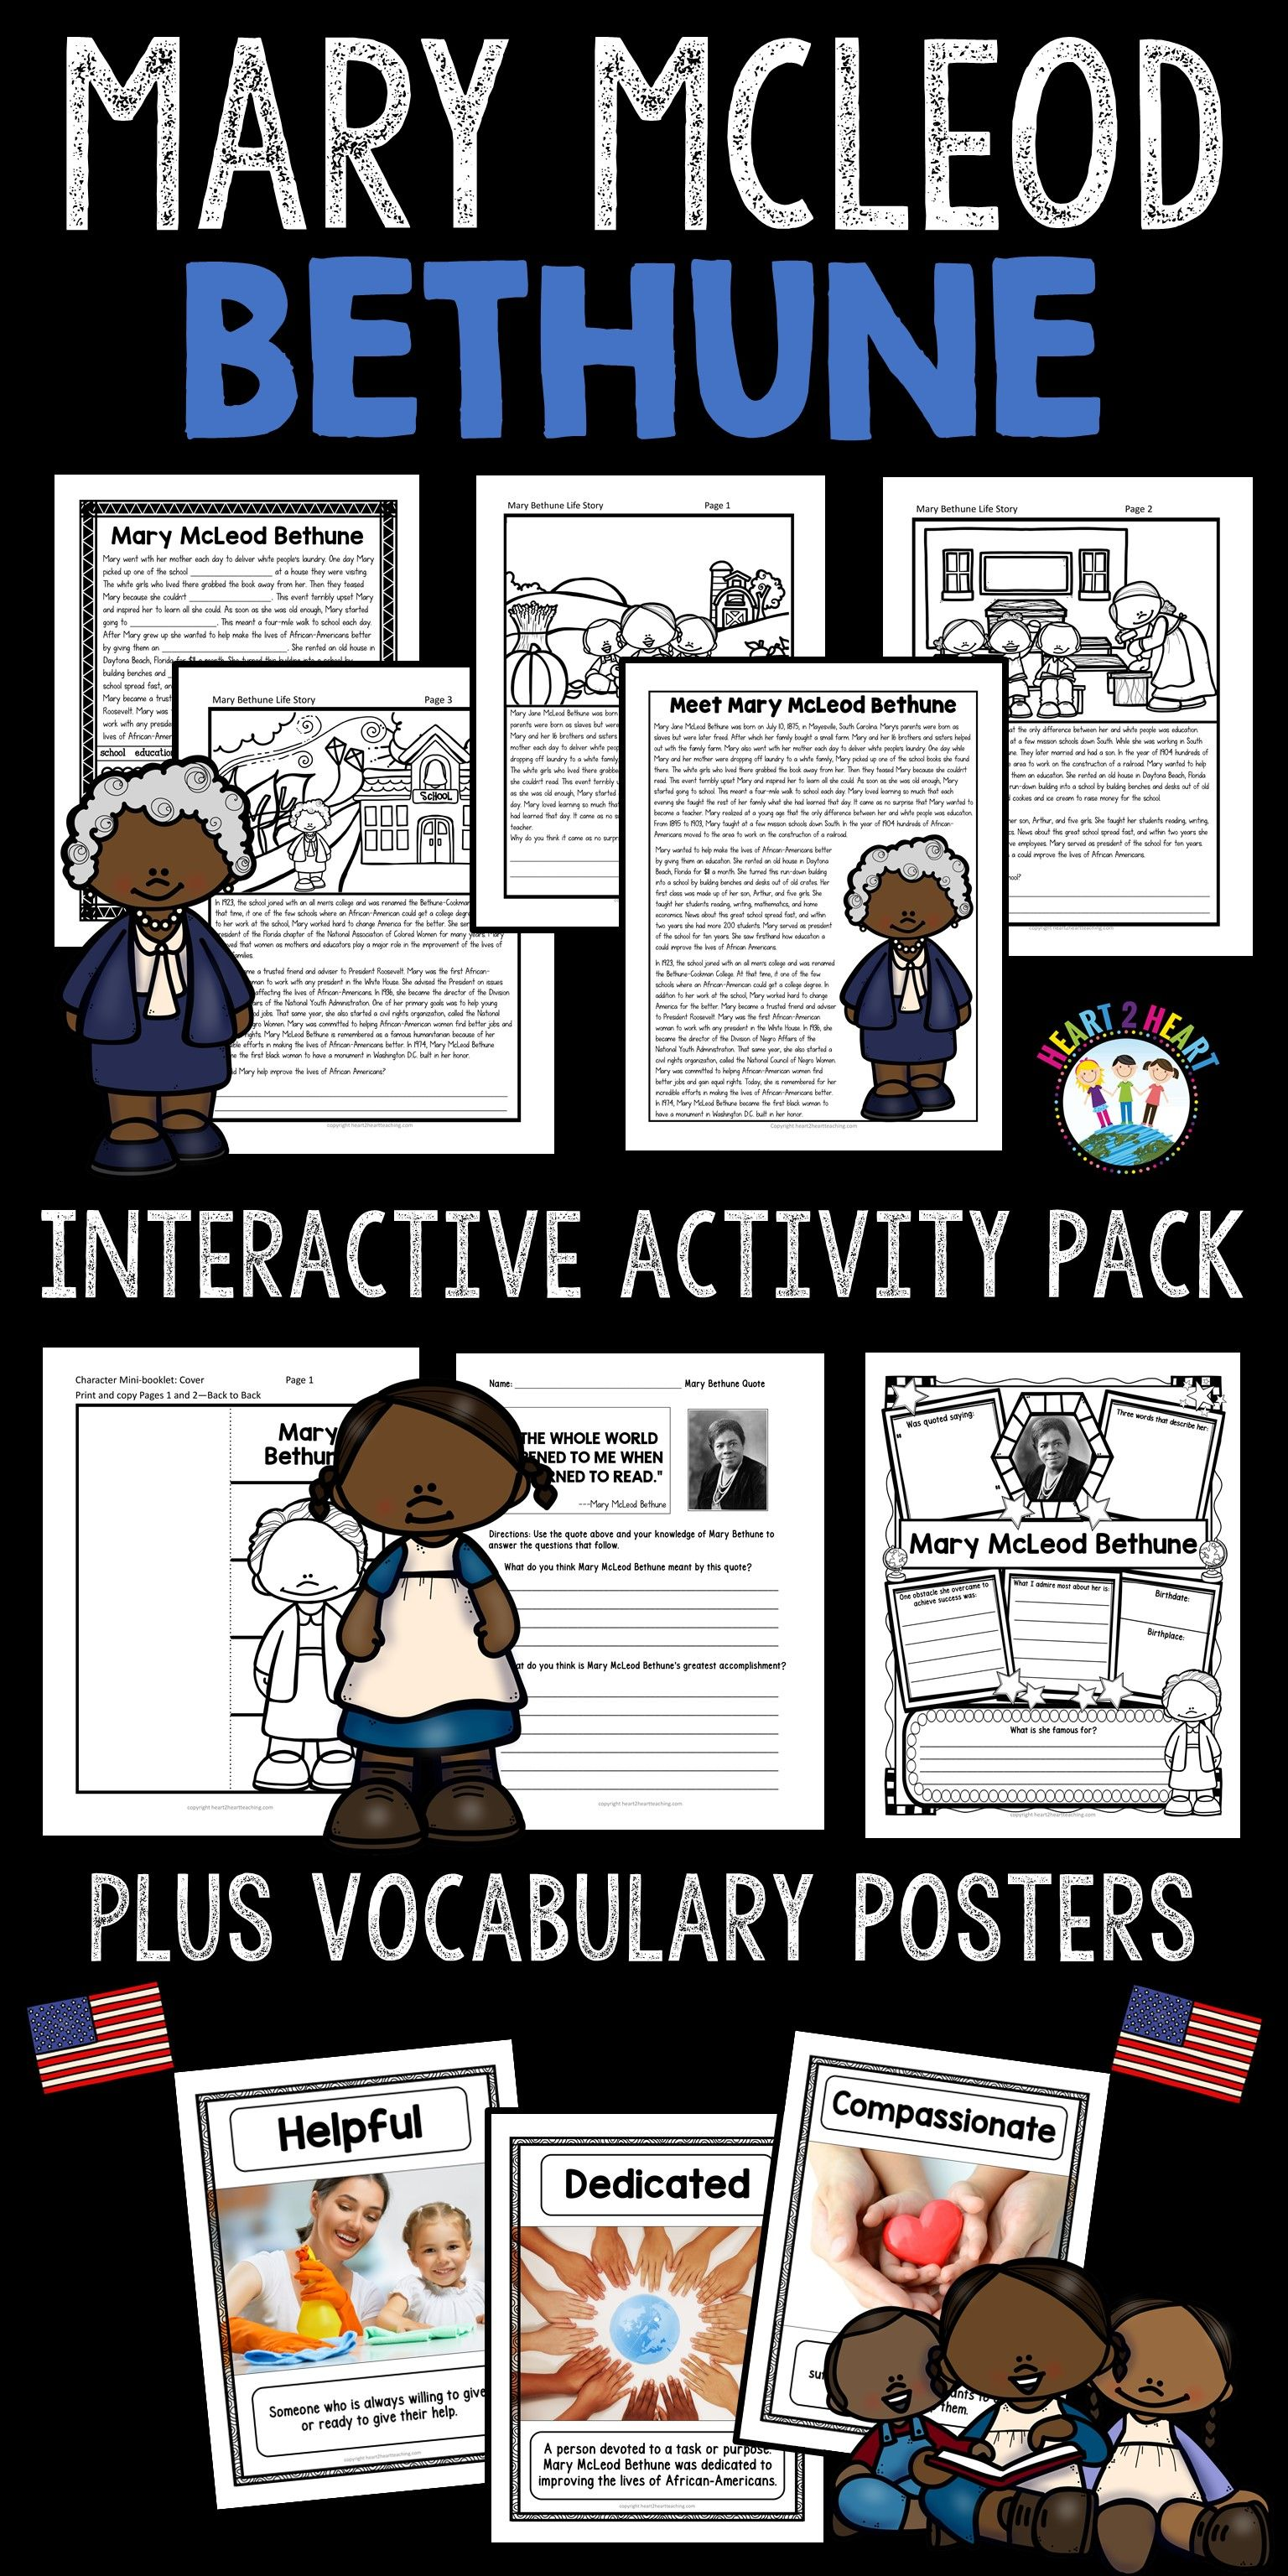 The Life Story Of Mary Mcleod Bethune Activity Pack With